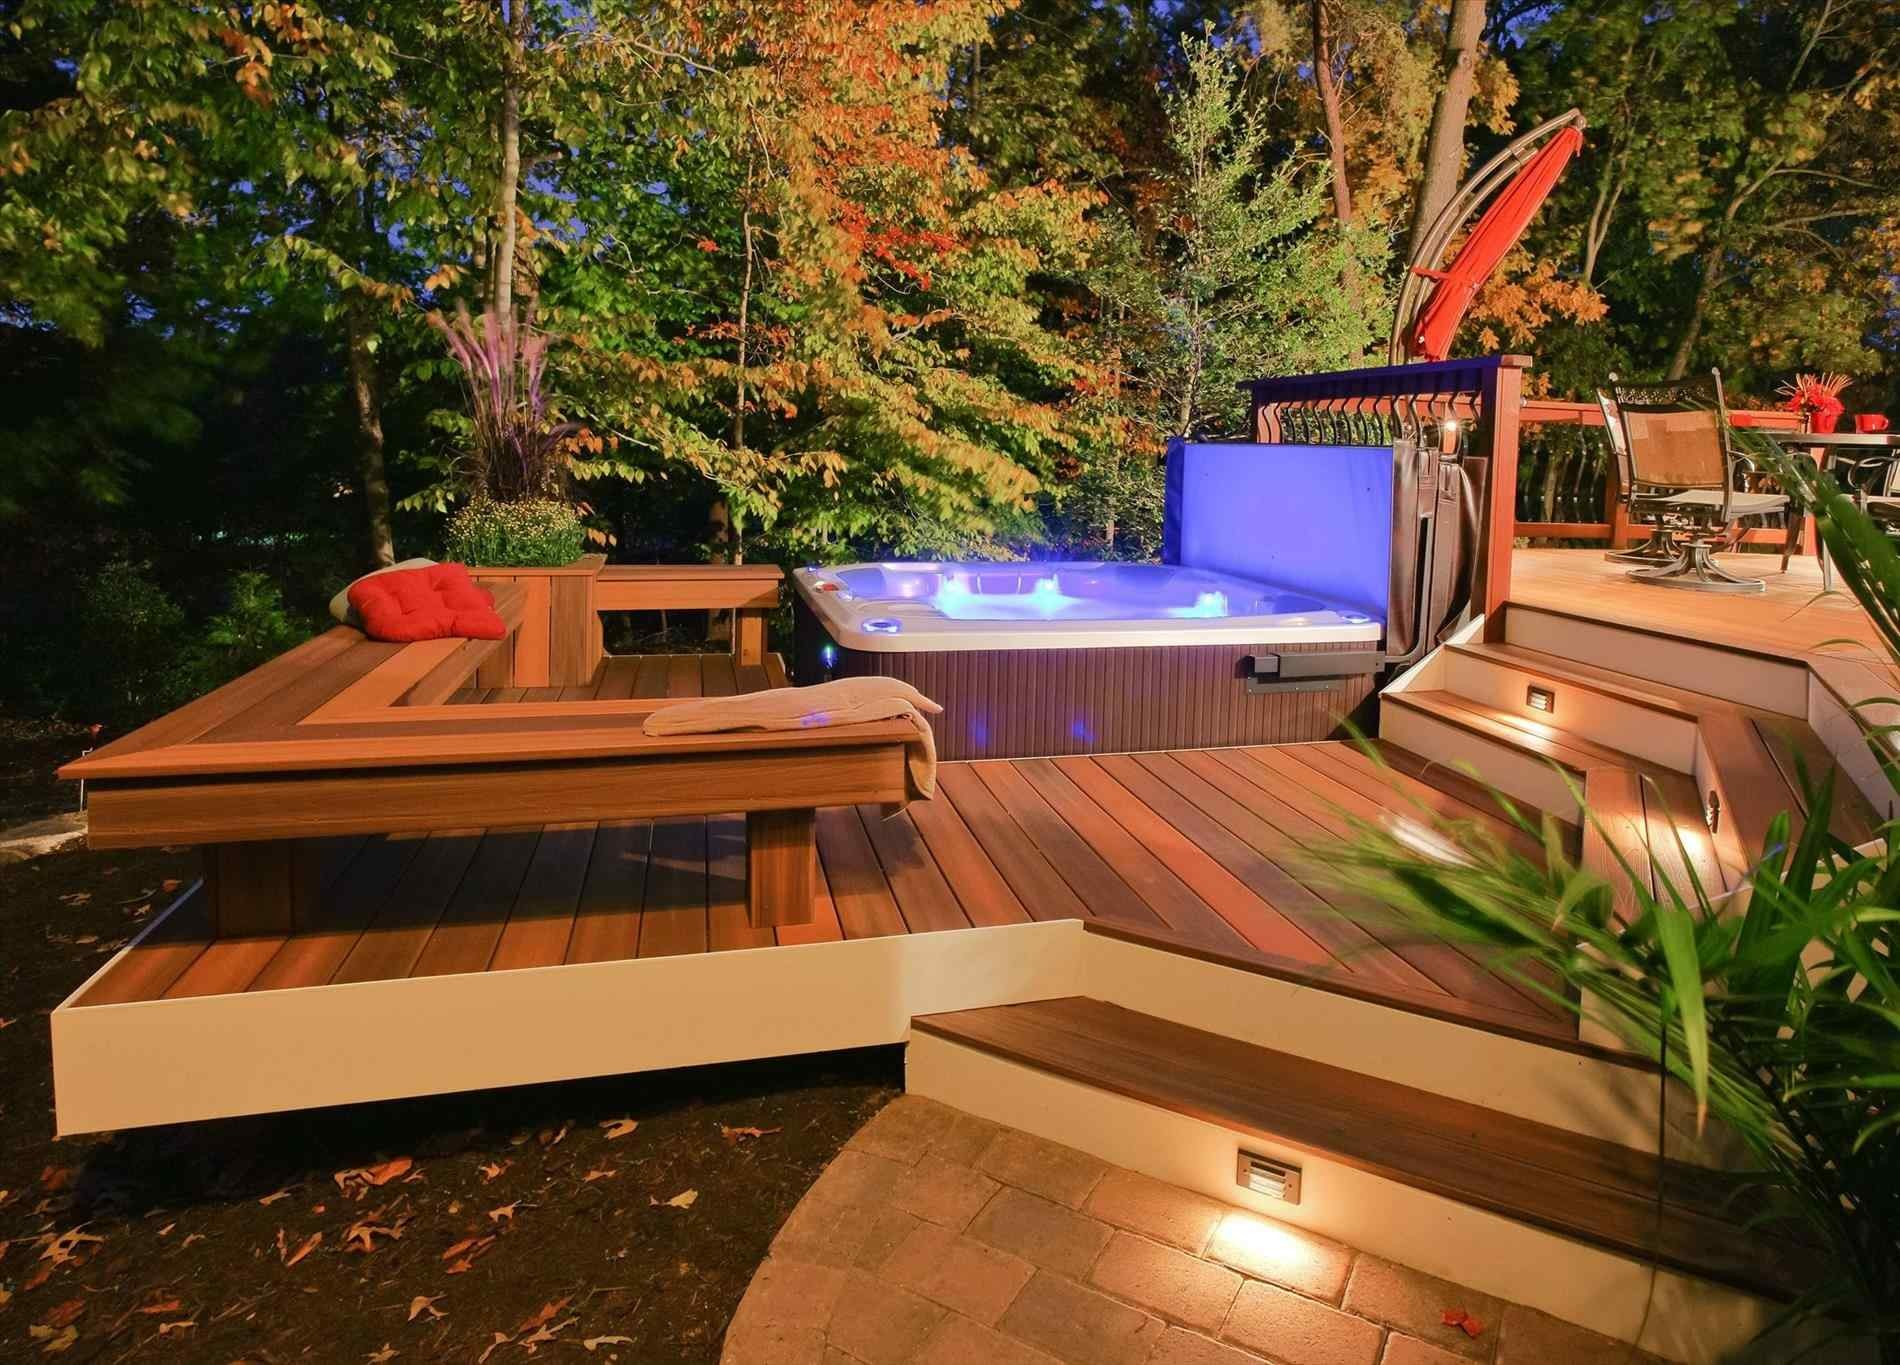 Deck Designs With Hot Tub And Fire Pit